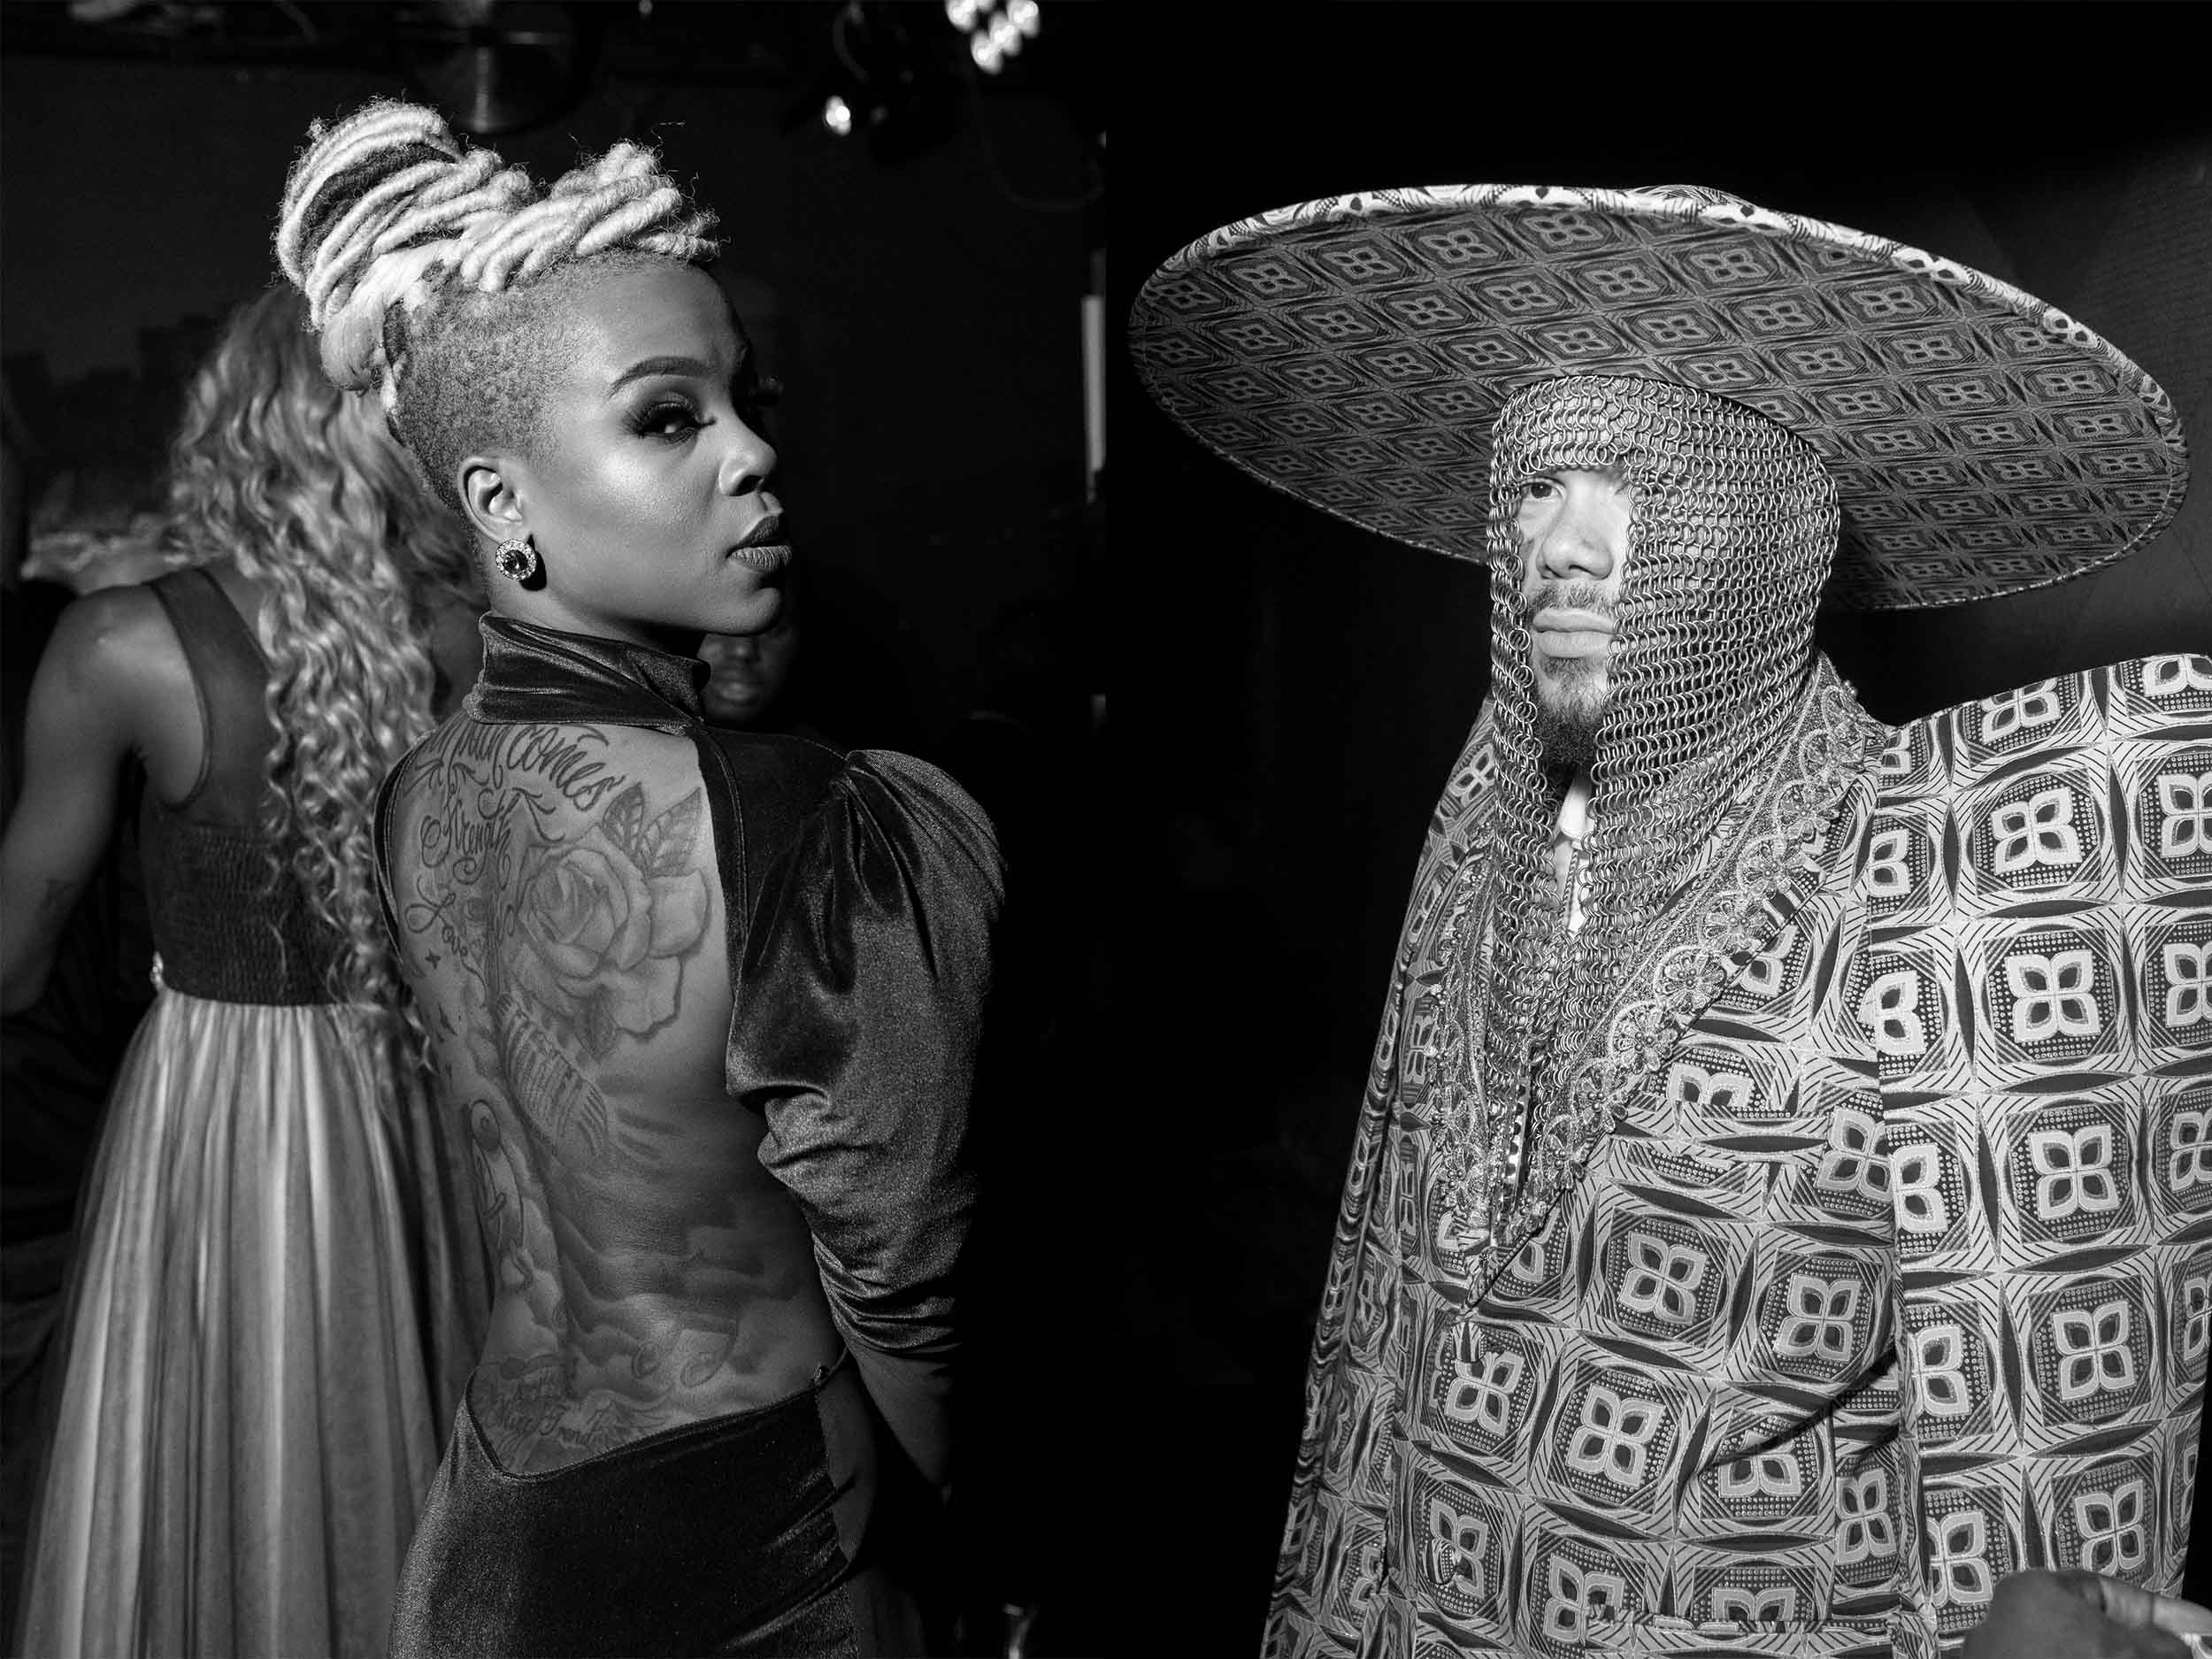 Photographer Dustin Thierry chronicles the underground Ballroom scene in his new exhibition, Opulence